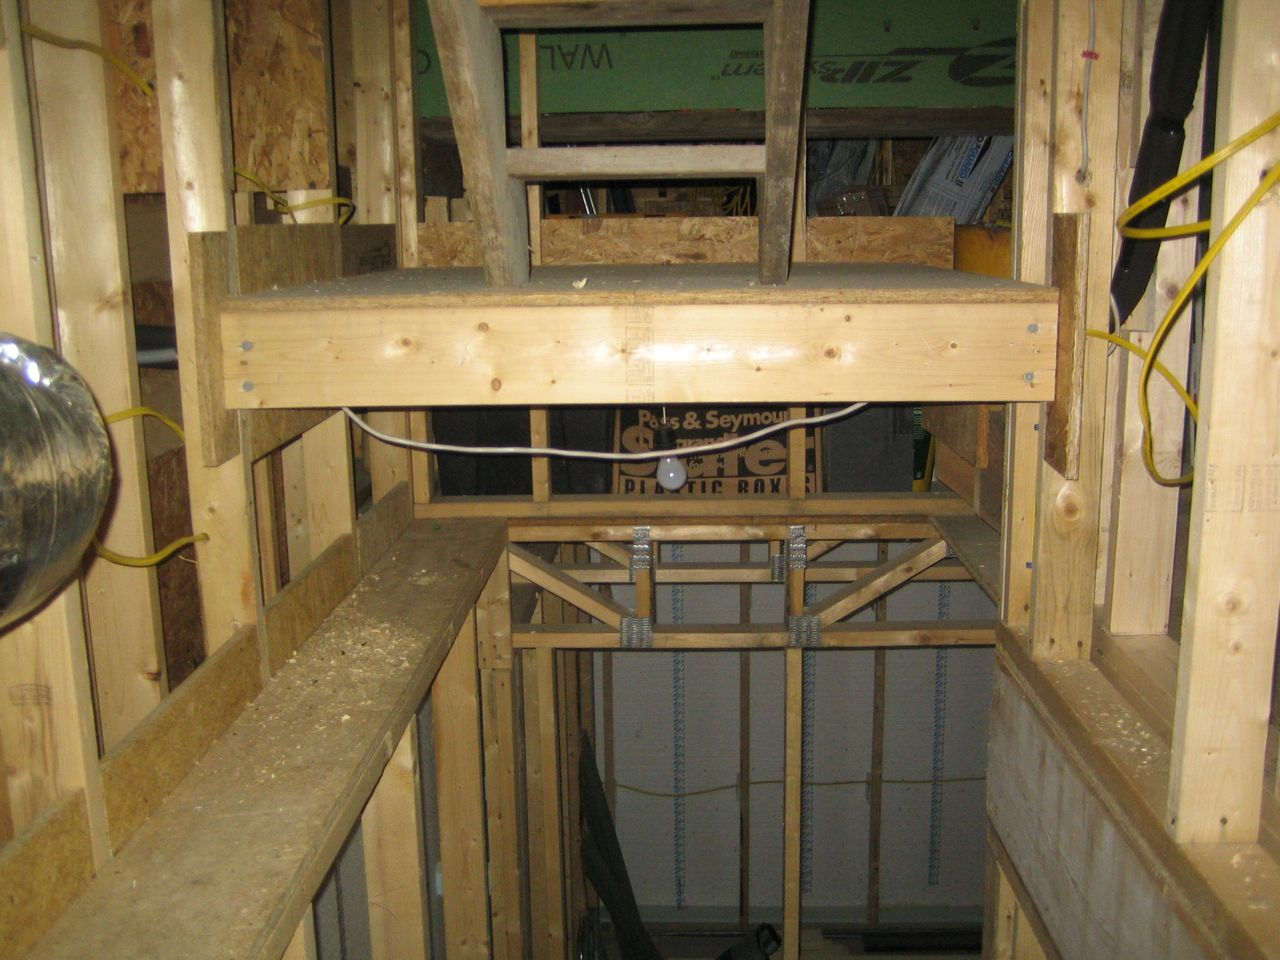 view of landing from basement stair tubing enters landing on right